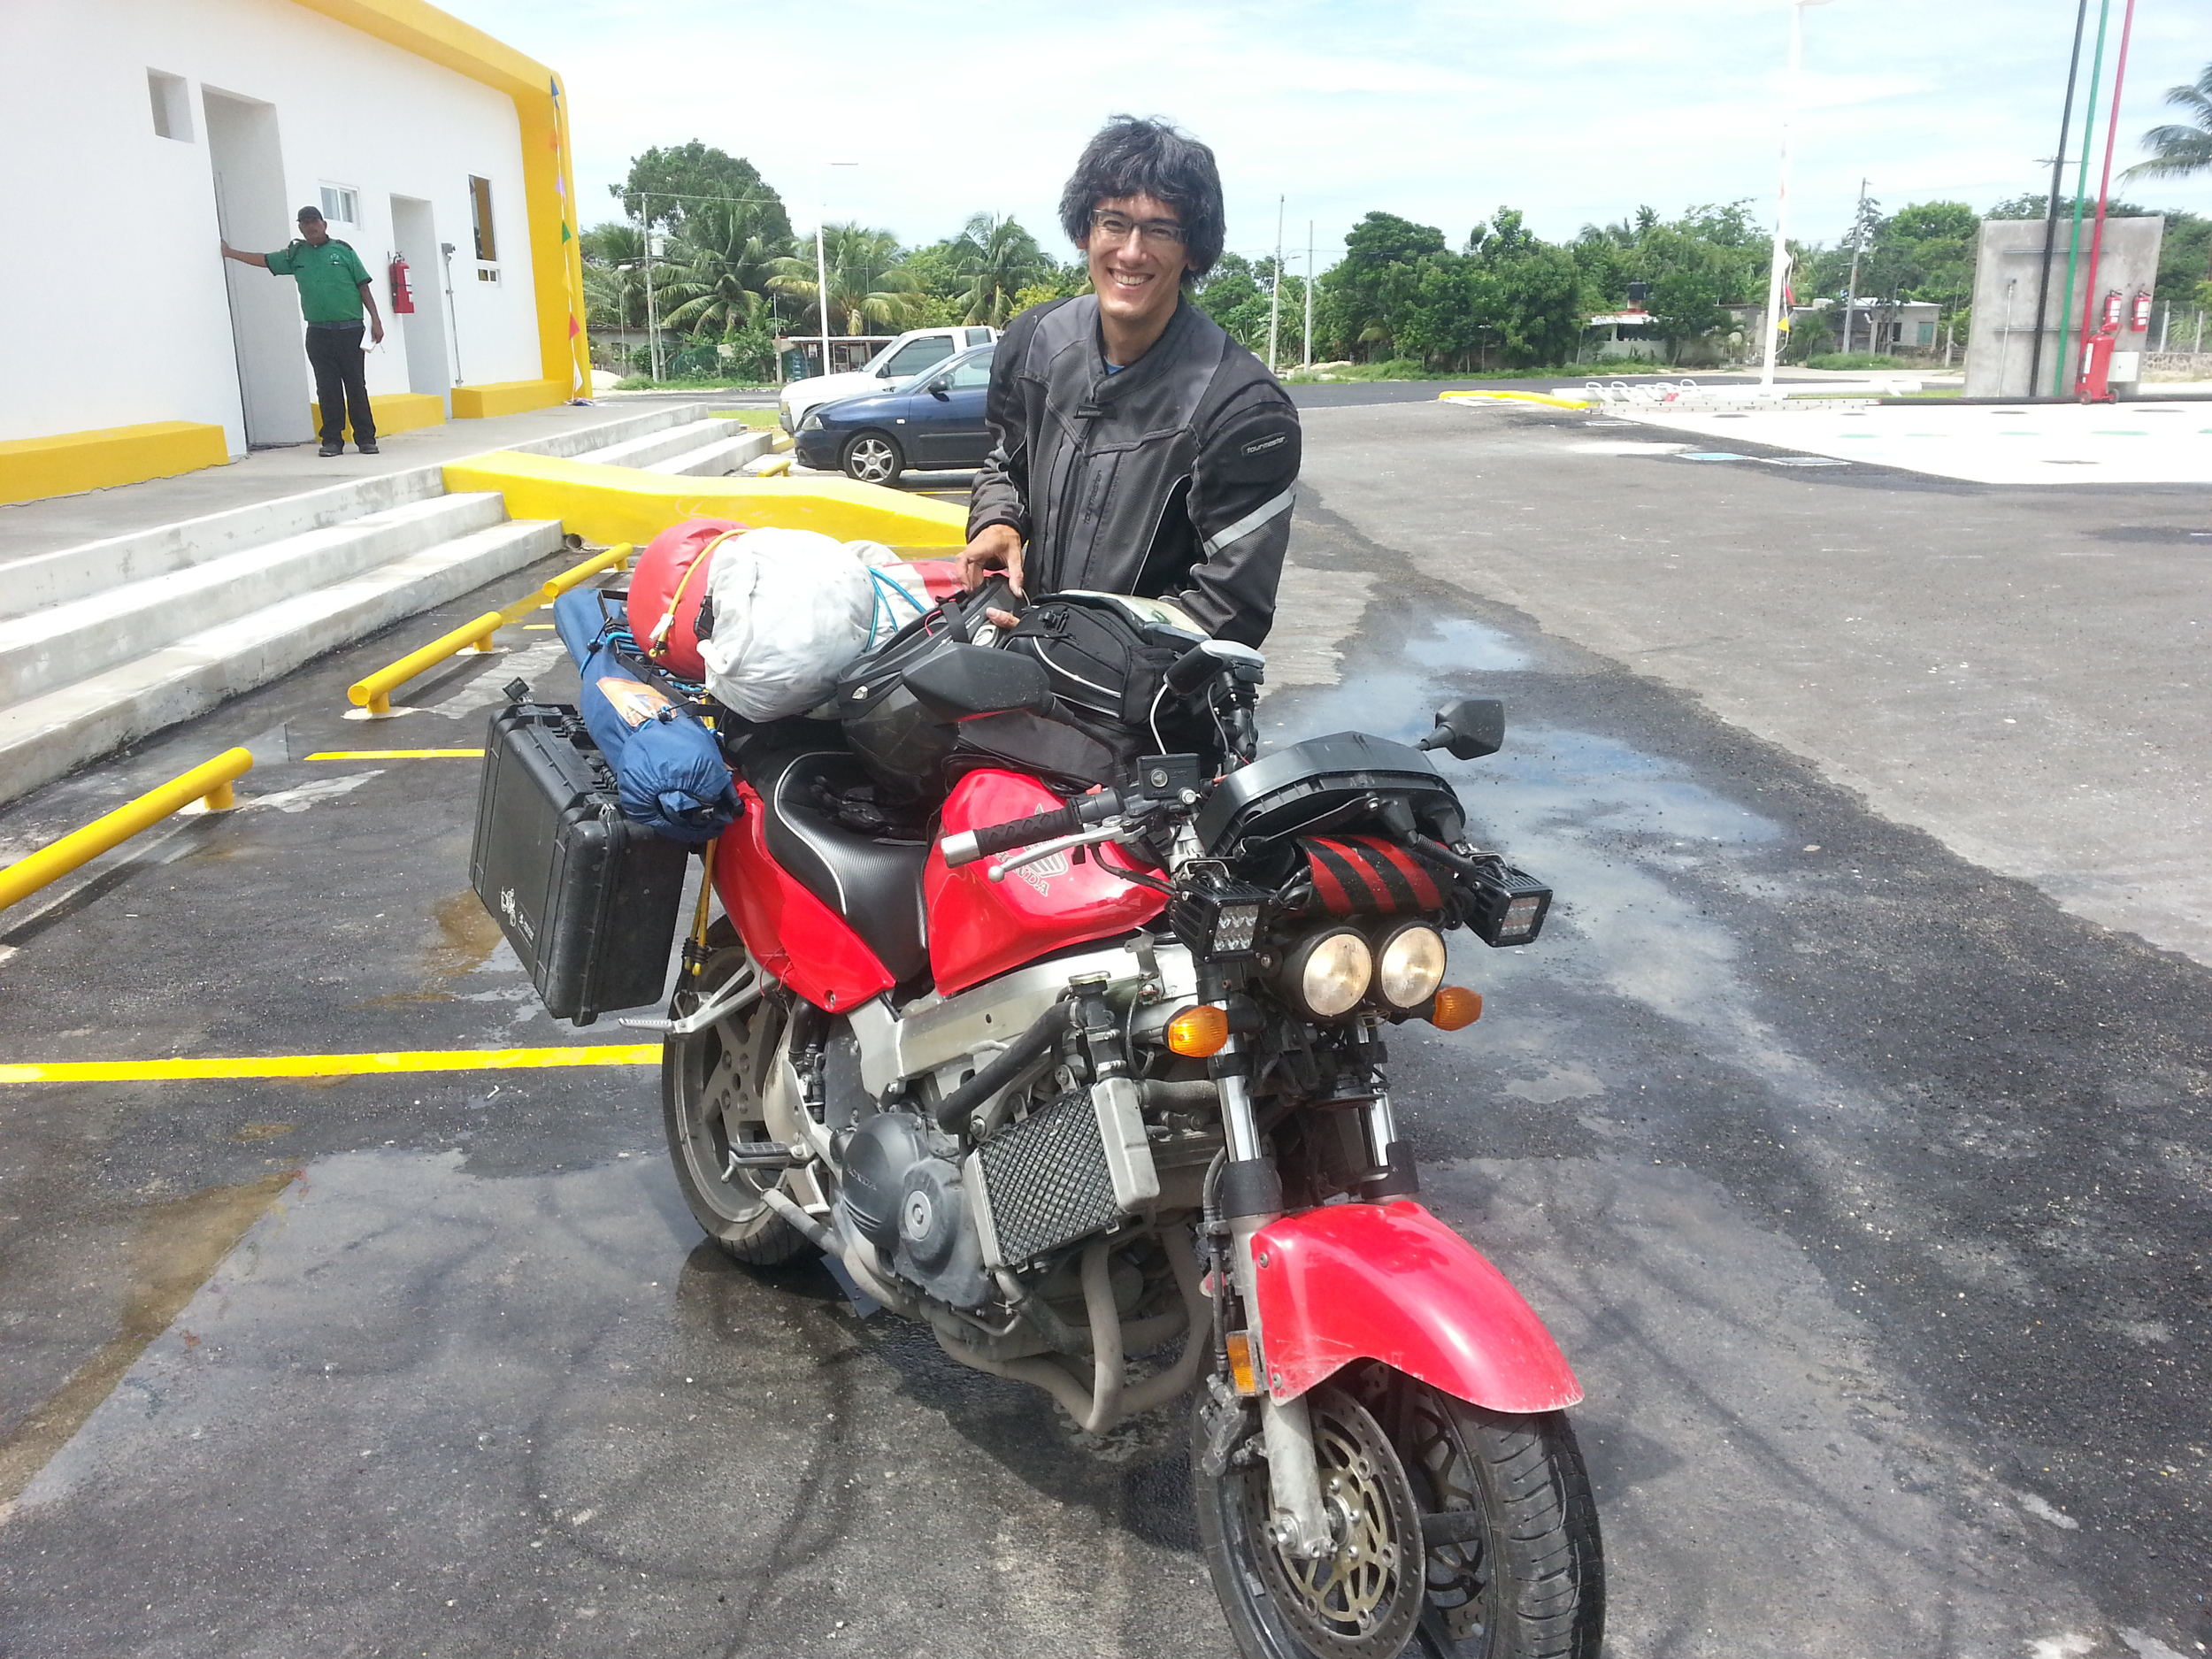 Paul from Witchita...on his Honda CBR 800 on his way to Panama